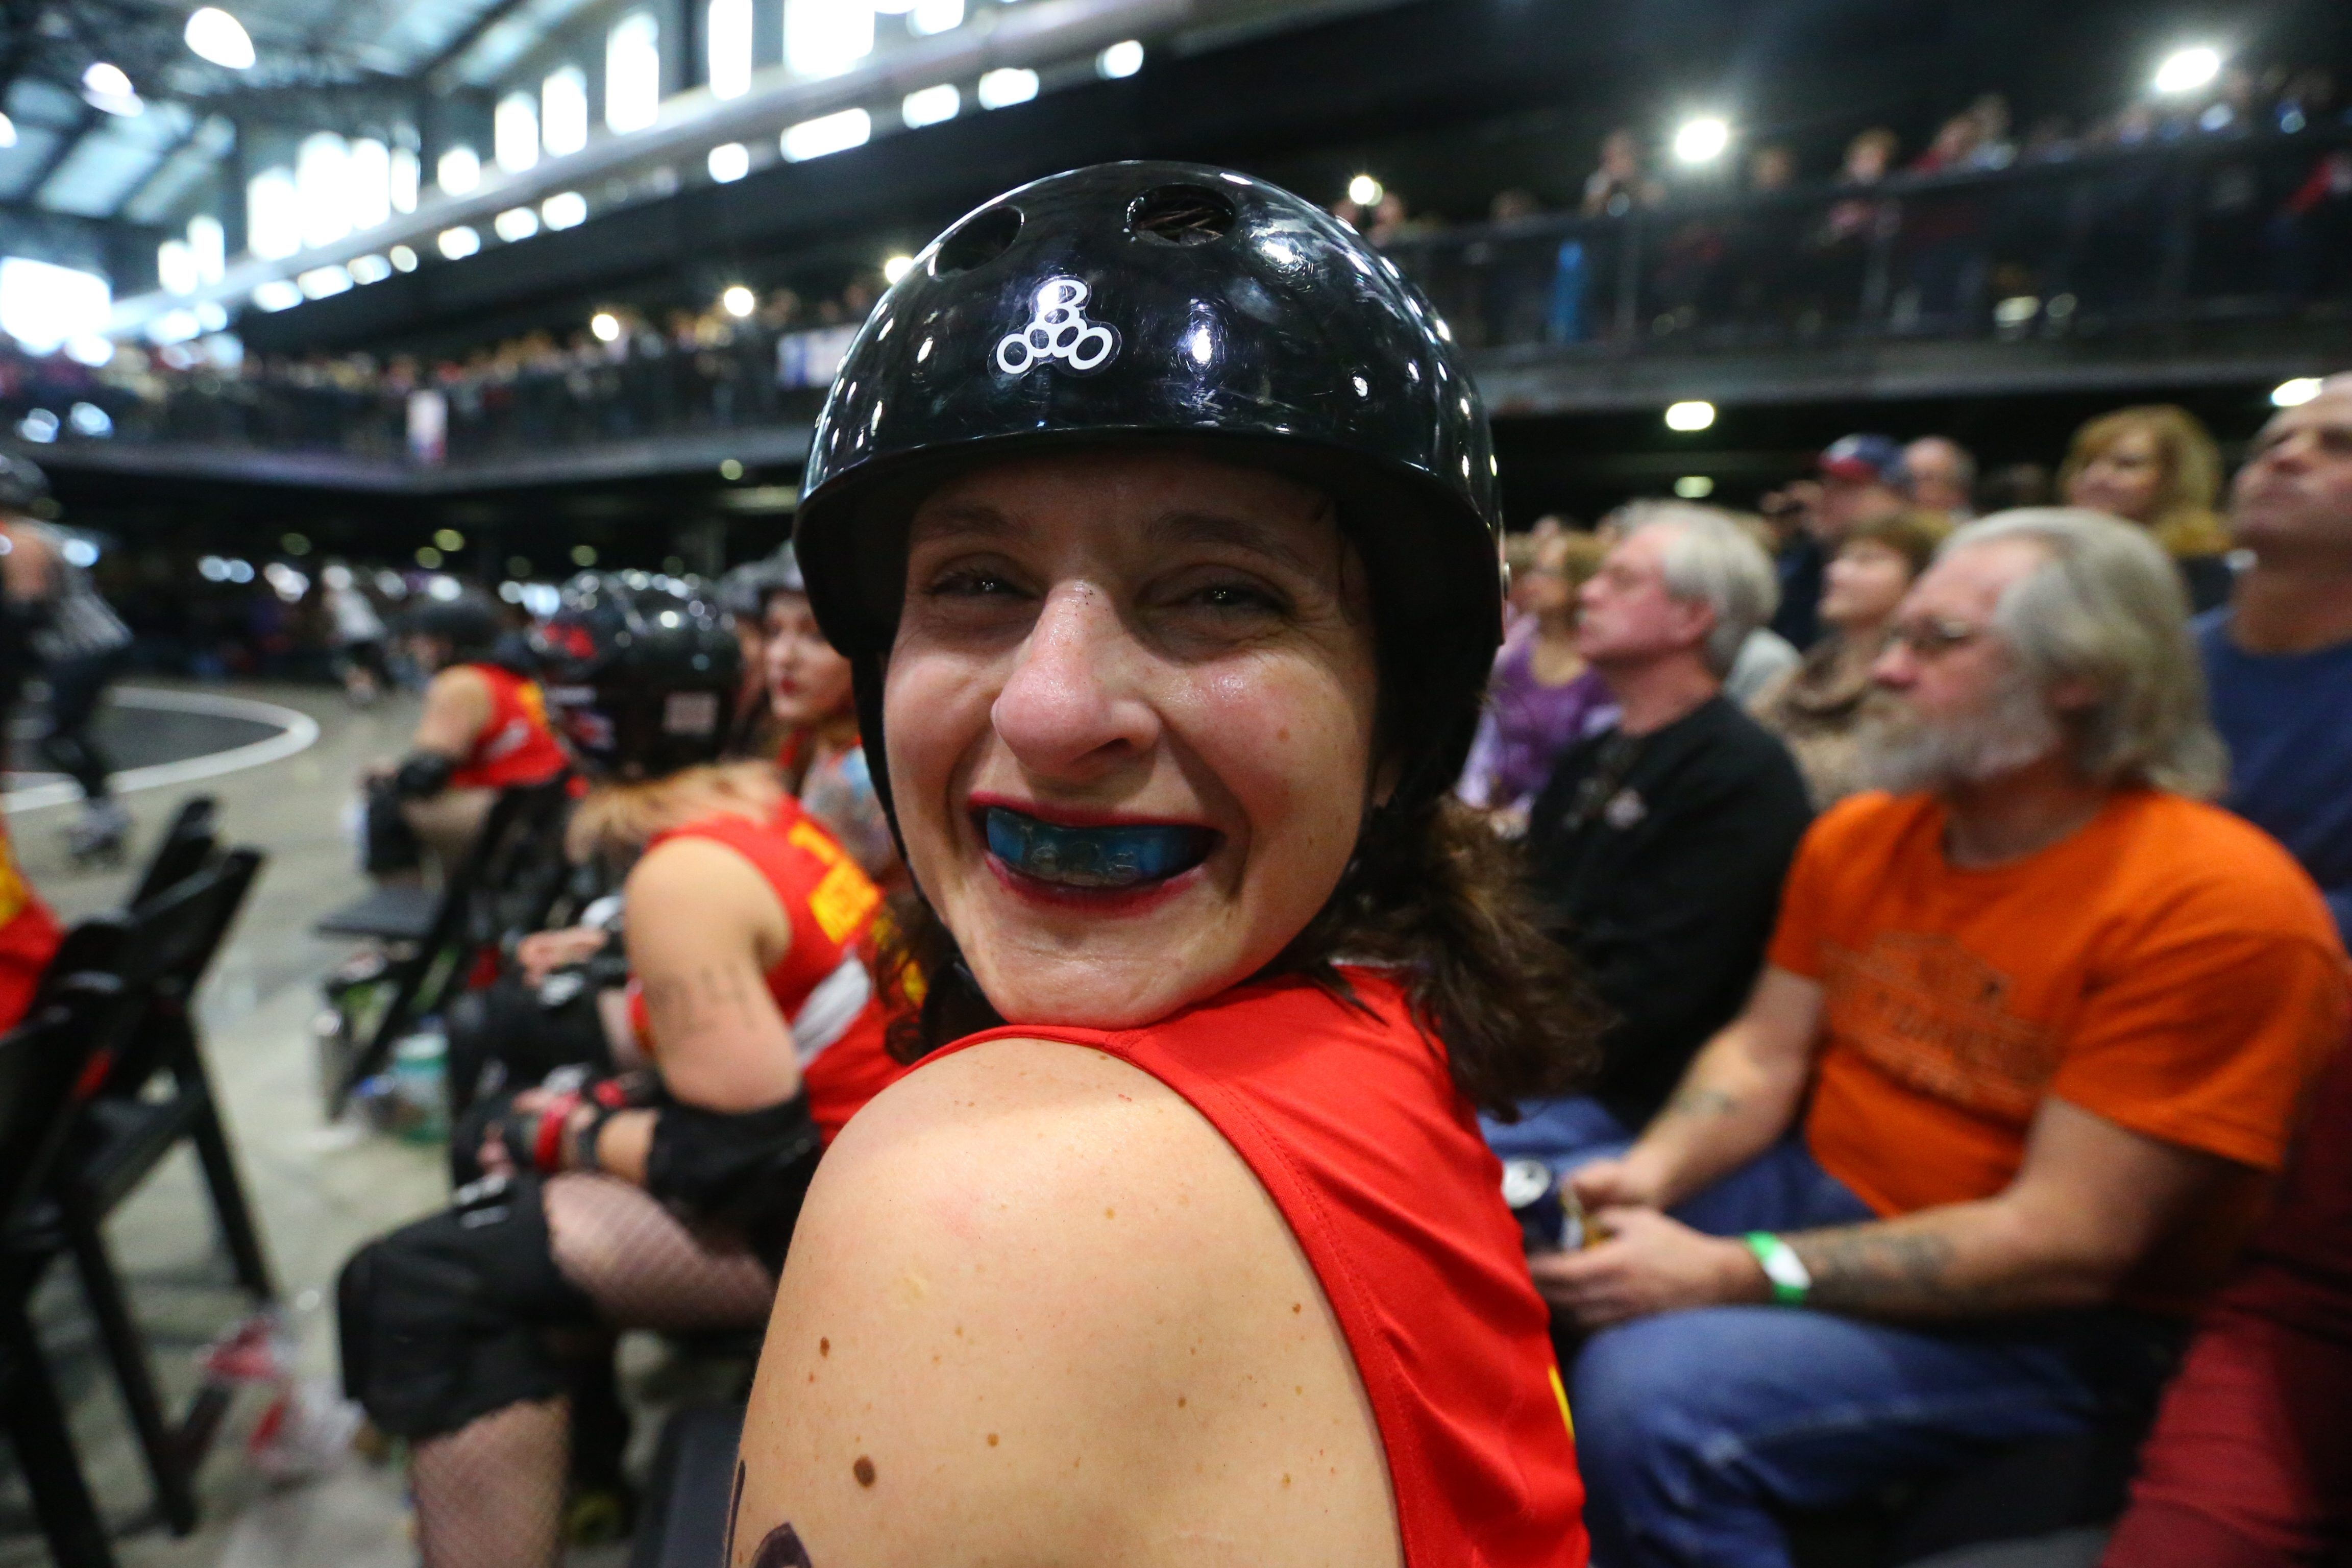 Players for the Devil Dollies and the Suicidal Saucies jockey for position Saturday at Buffalo RiverWorks in downtown Buffalo.